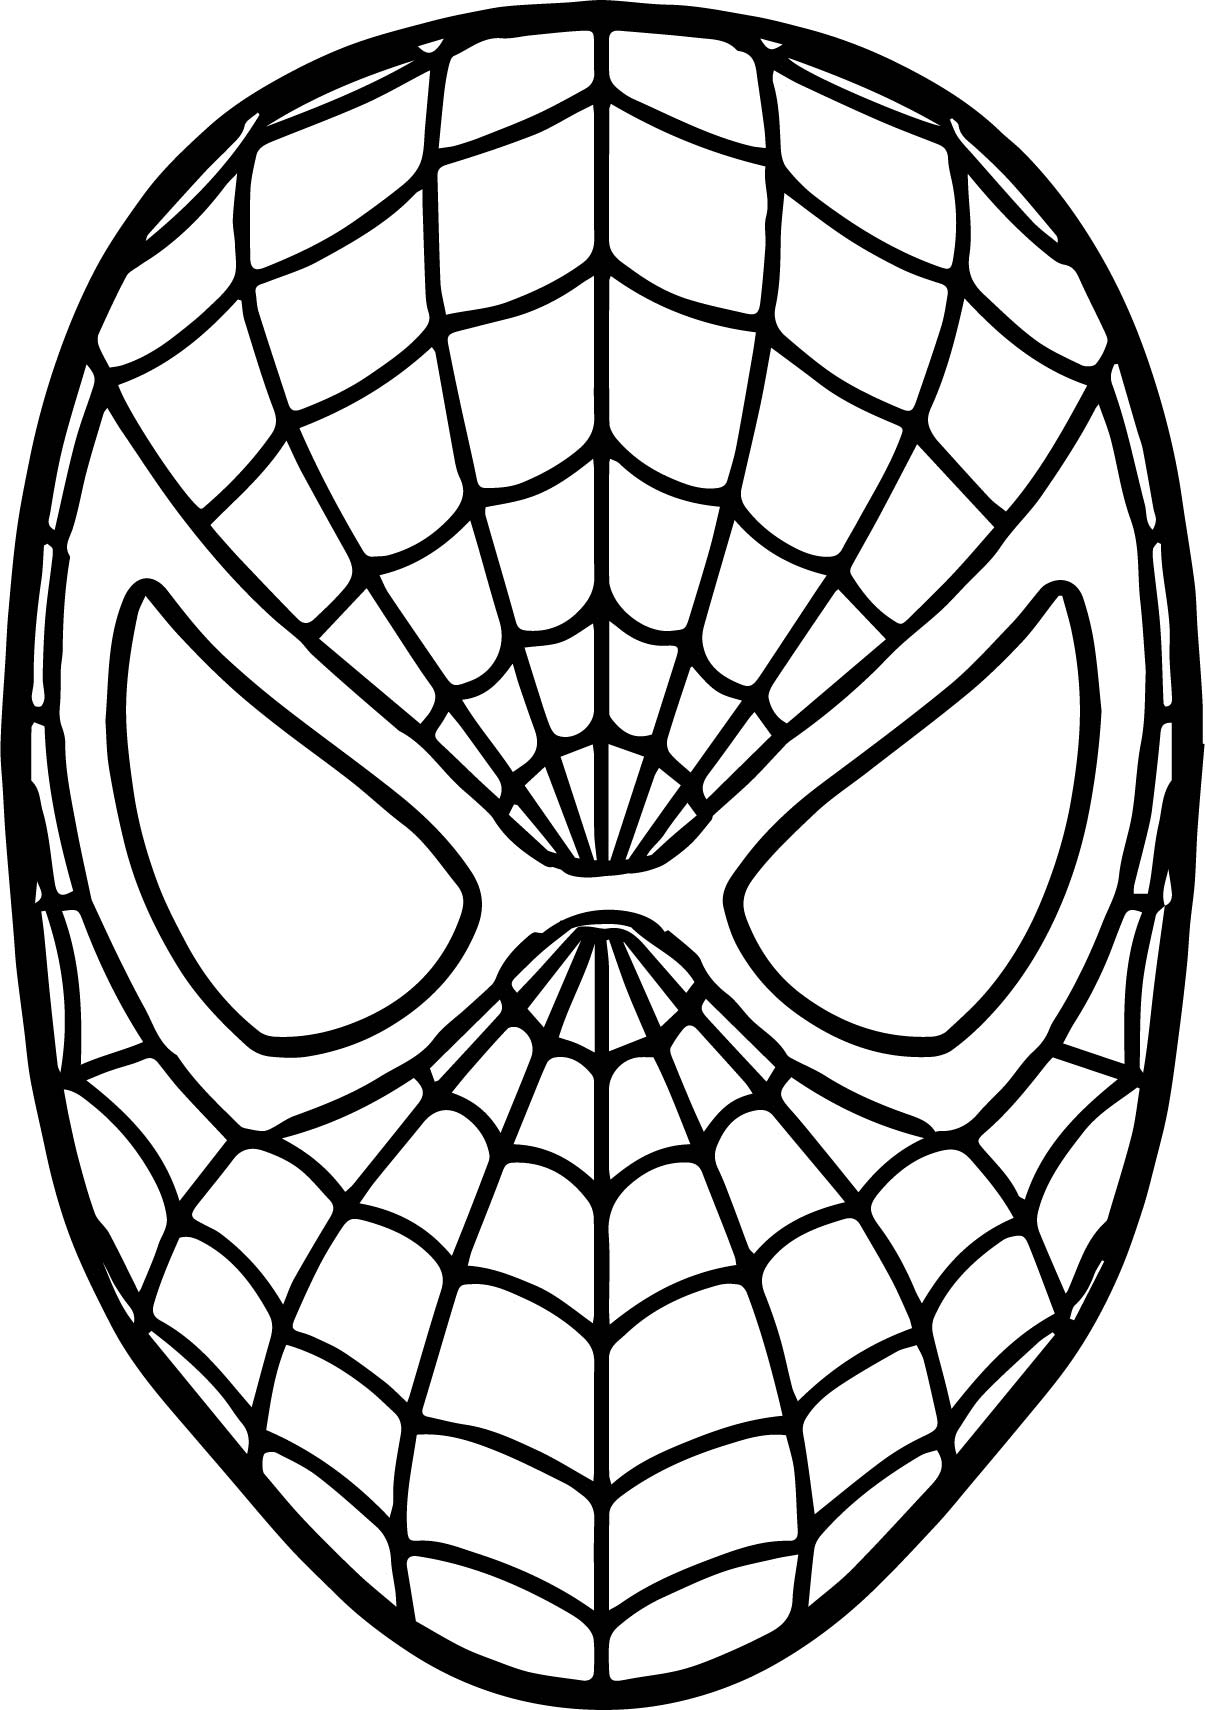 It's just an image of Eloquent Spiderman Mask Printable